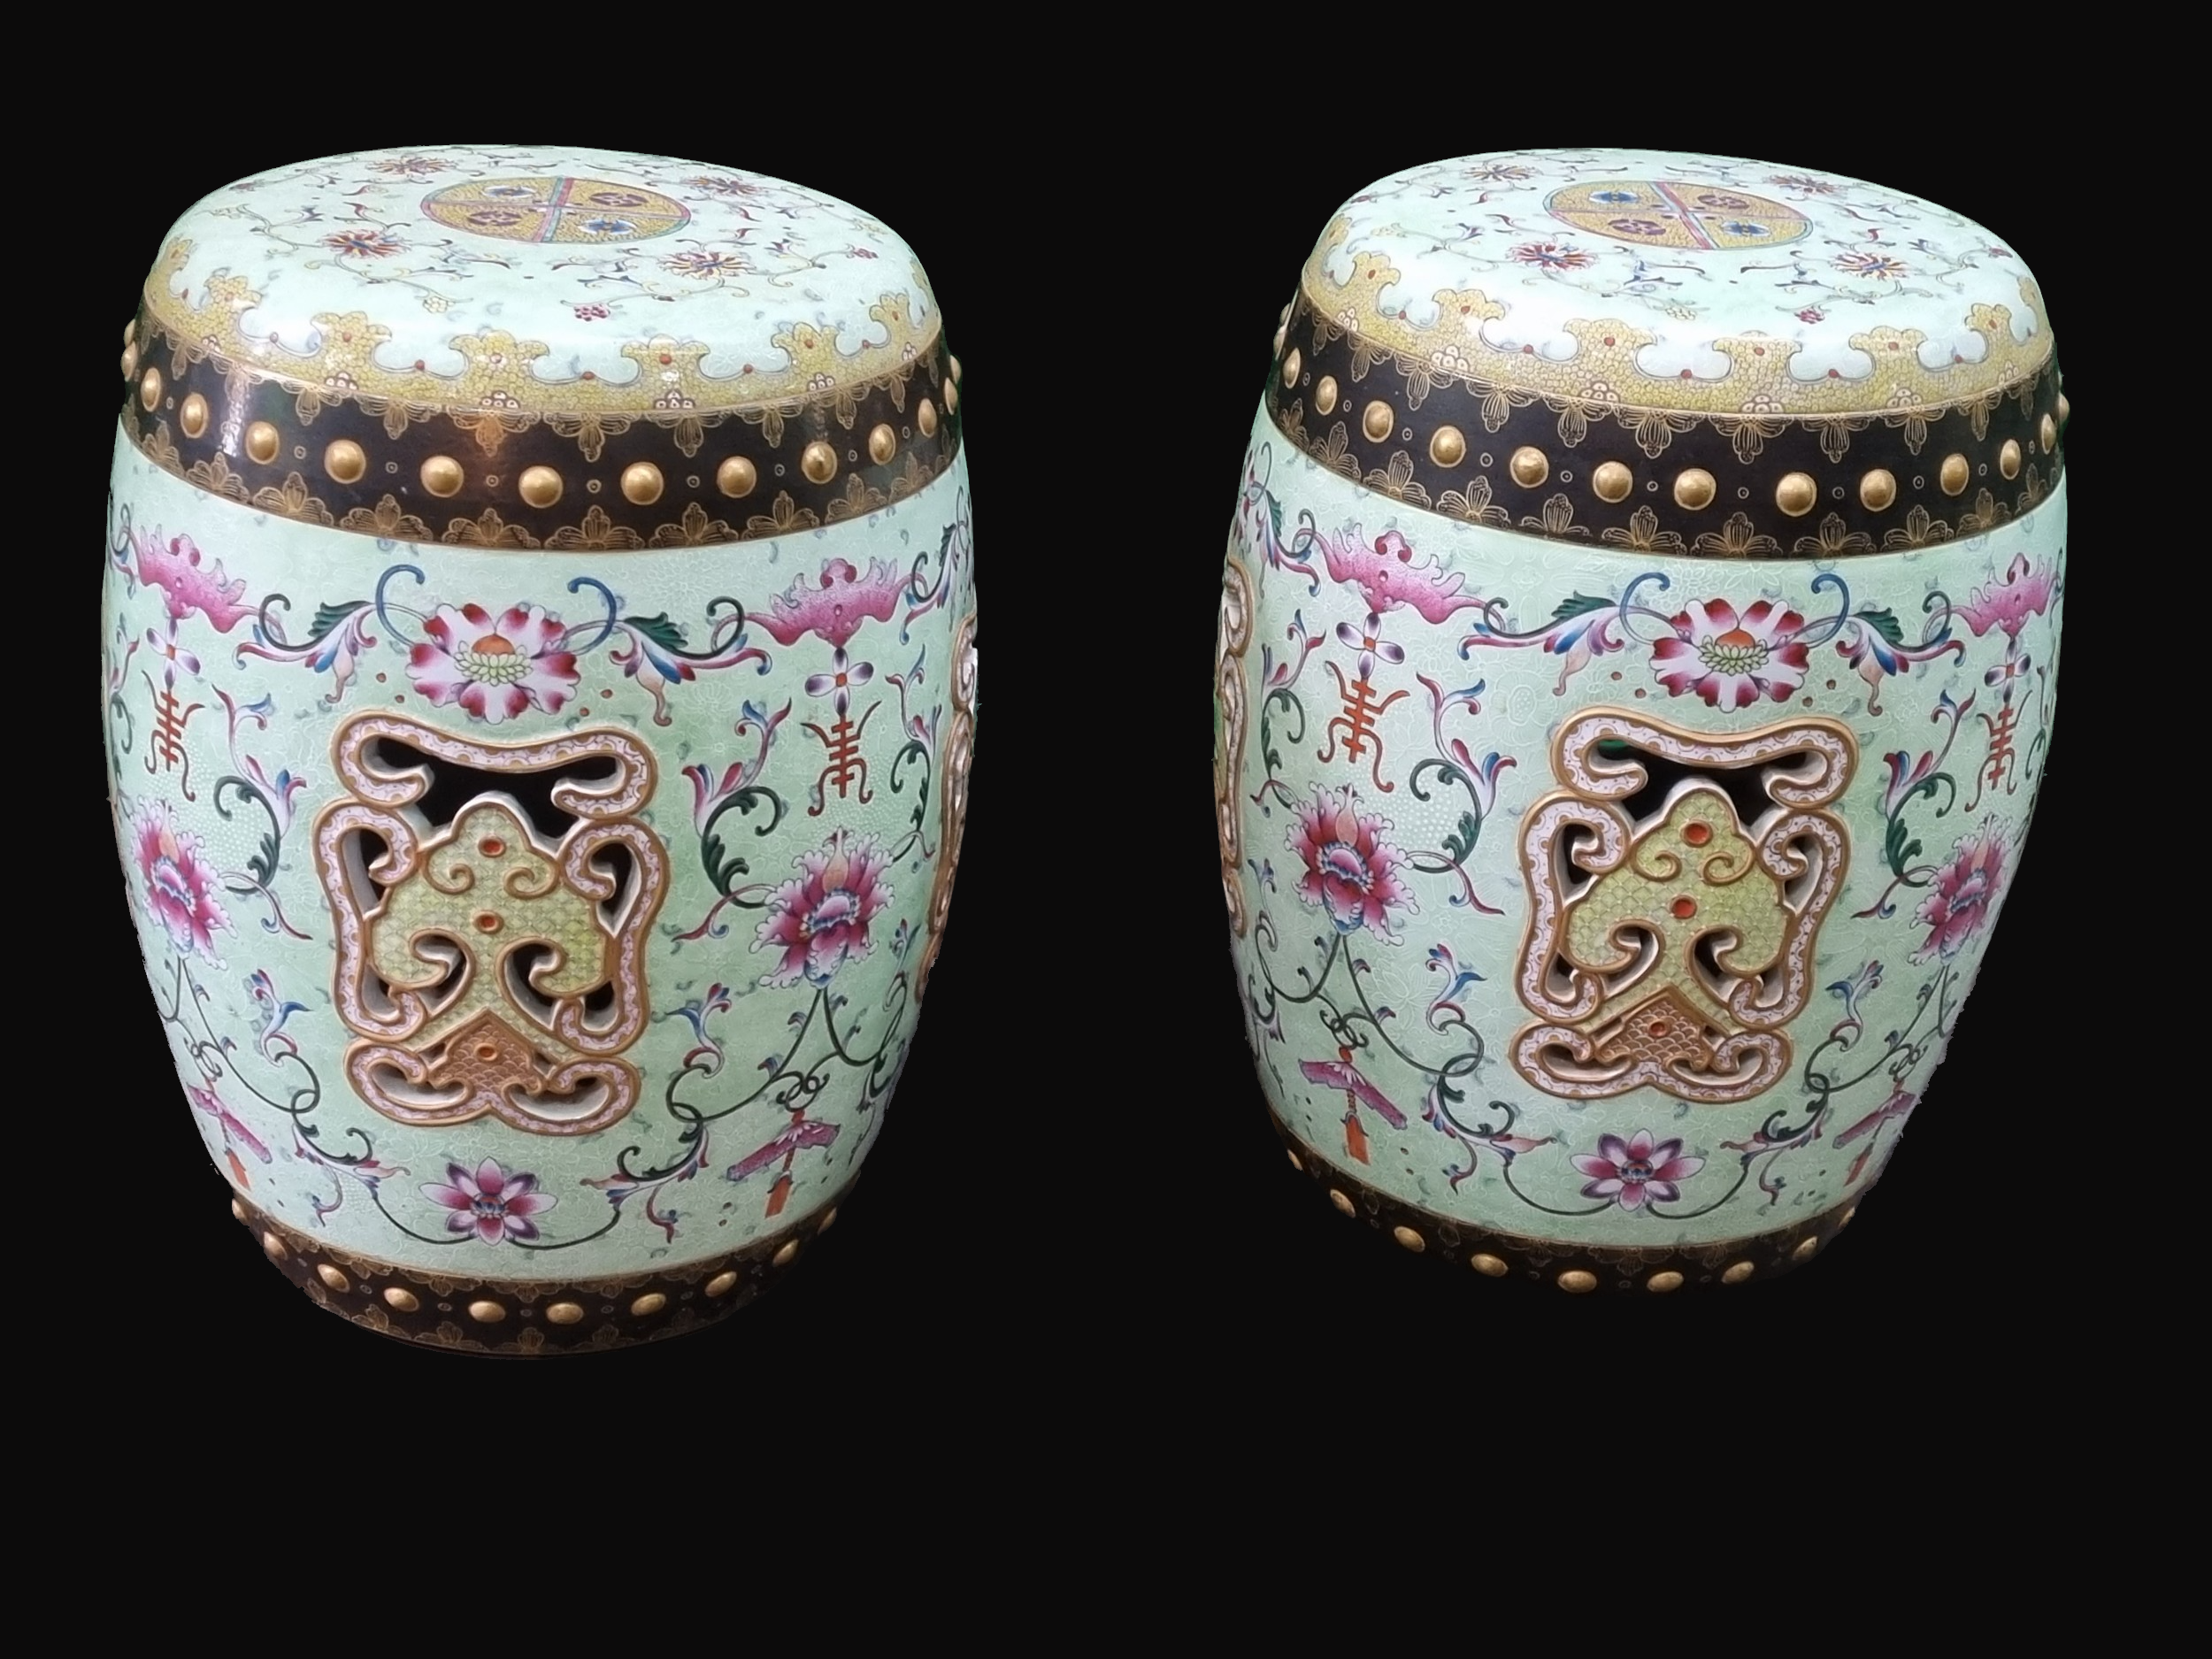 A Magnificent Pair of Chinese Enamelled Porcelain Garden Seats